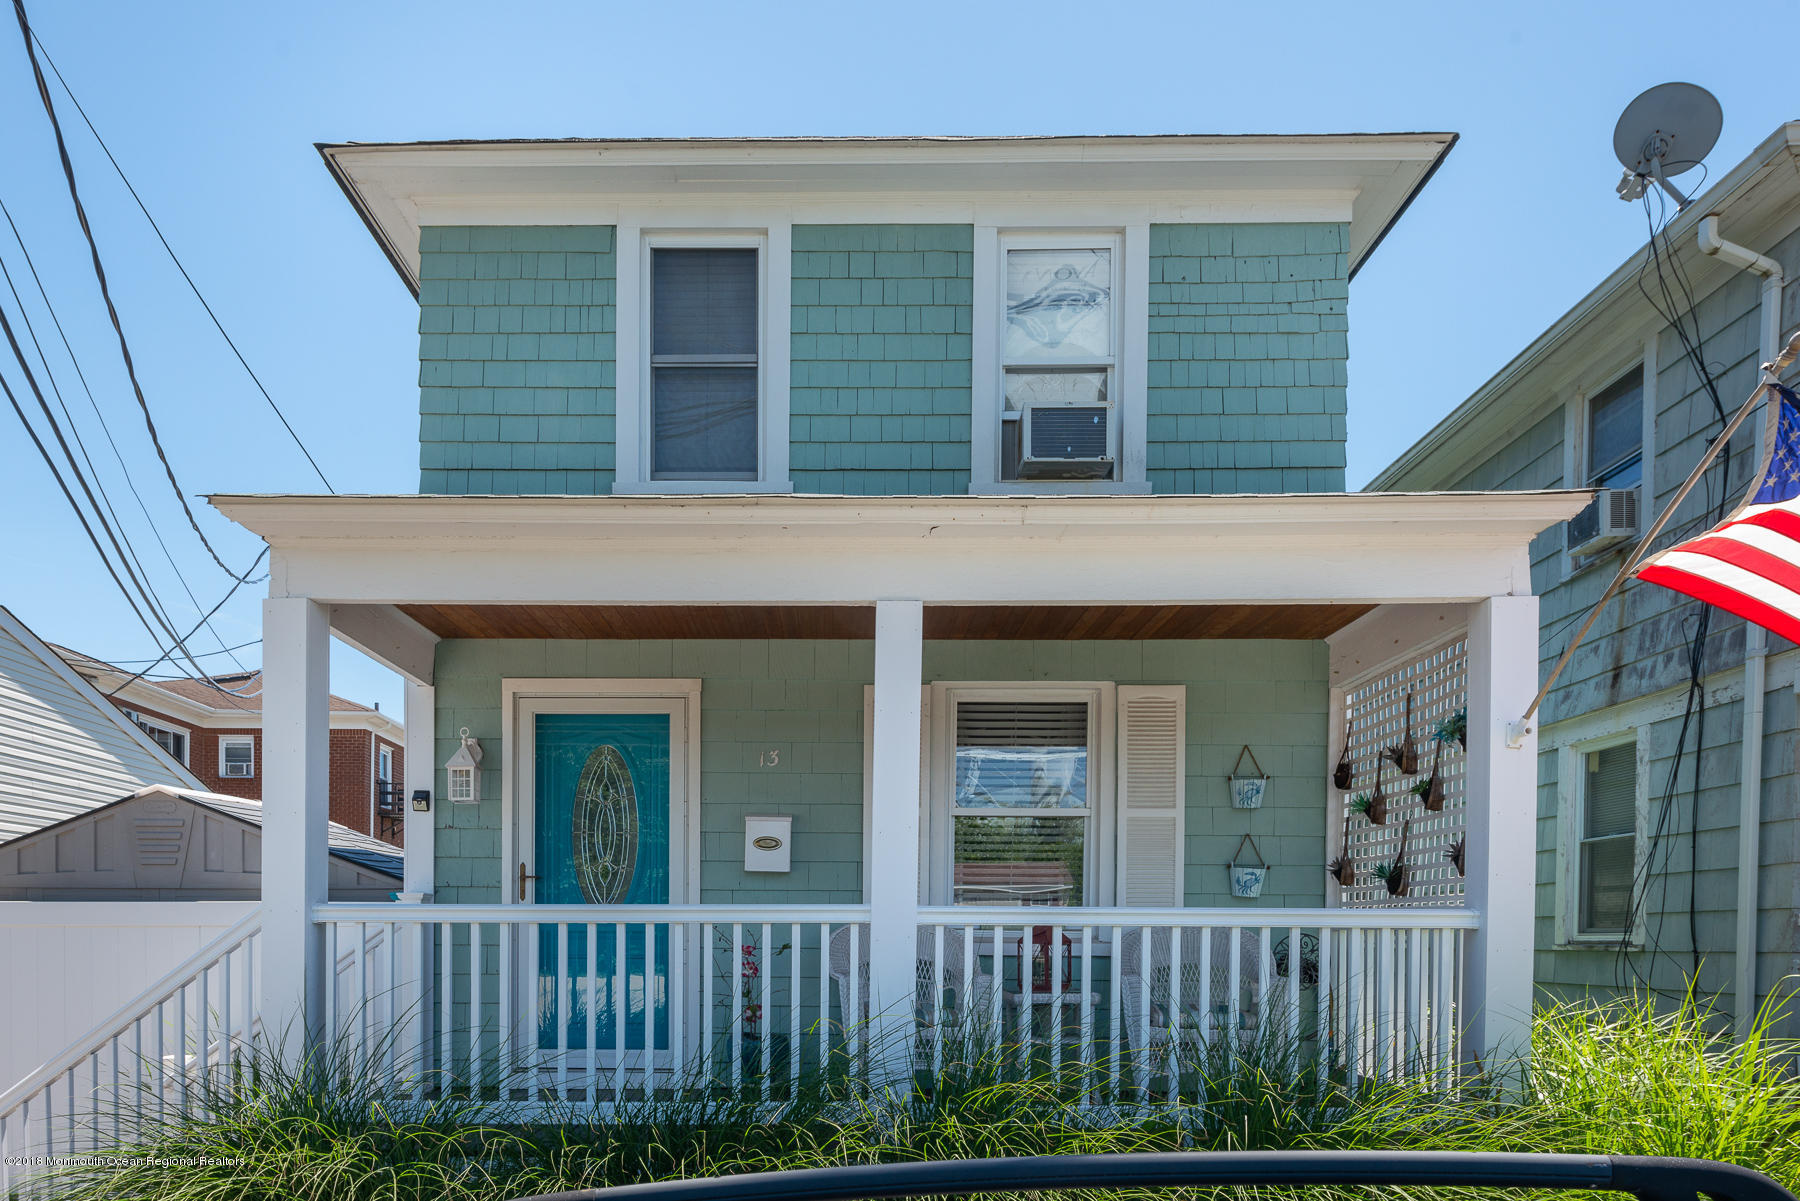 Photo of 13 Stanton Place, Avon-by-the-sea, NJ 07717